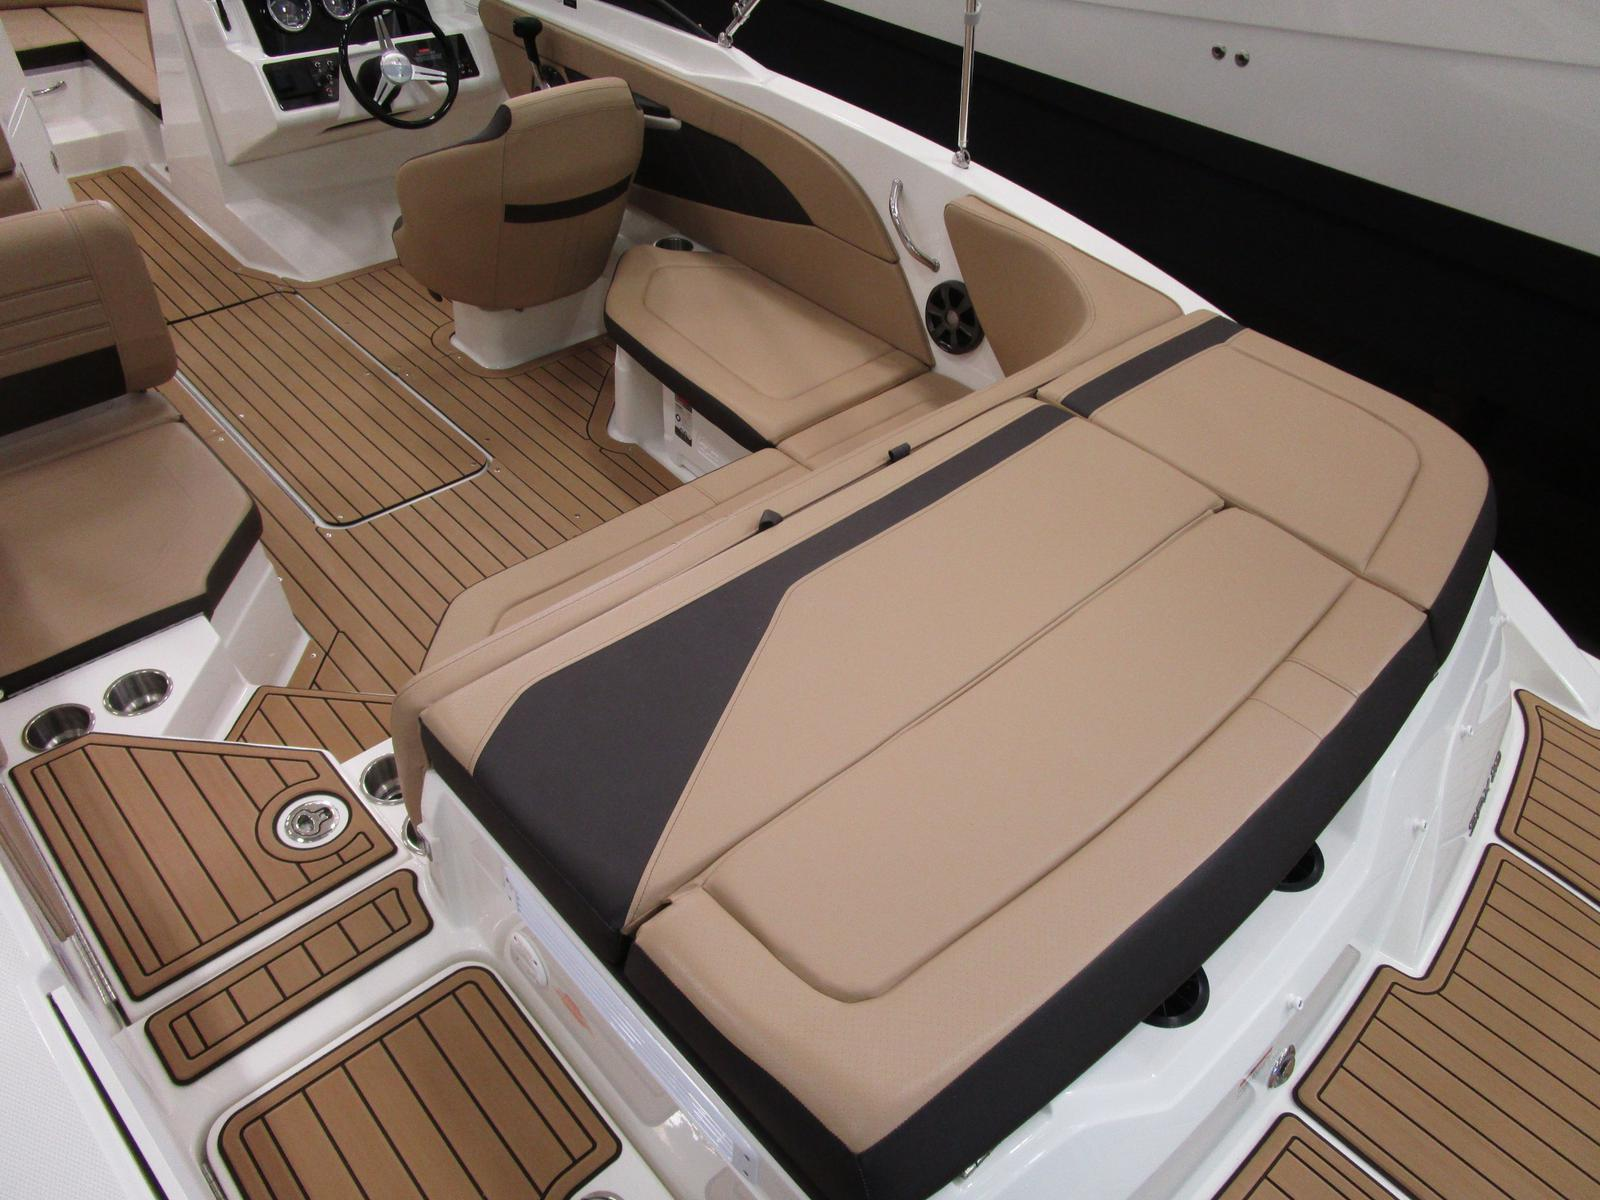 2019 Sea Ray boat for sale, model of the boat is SPX 210 & Image # 3 of 7